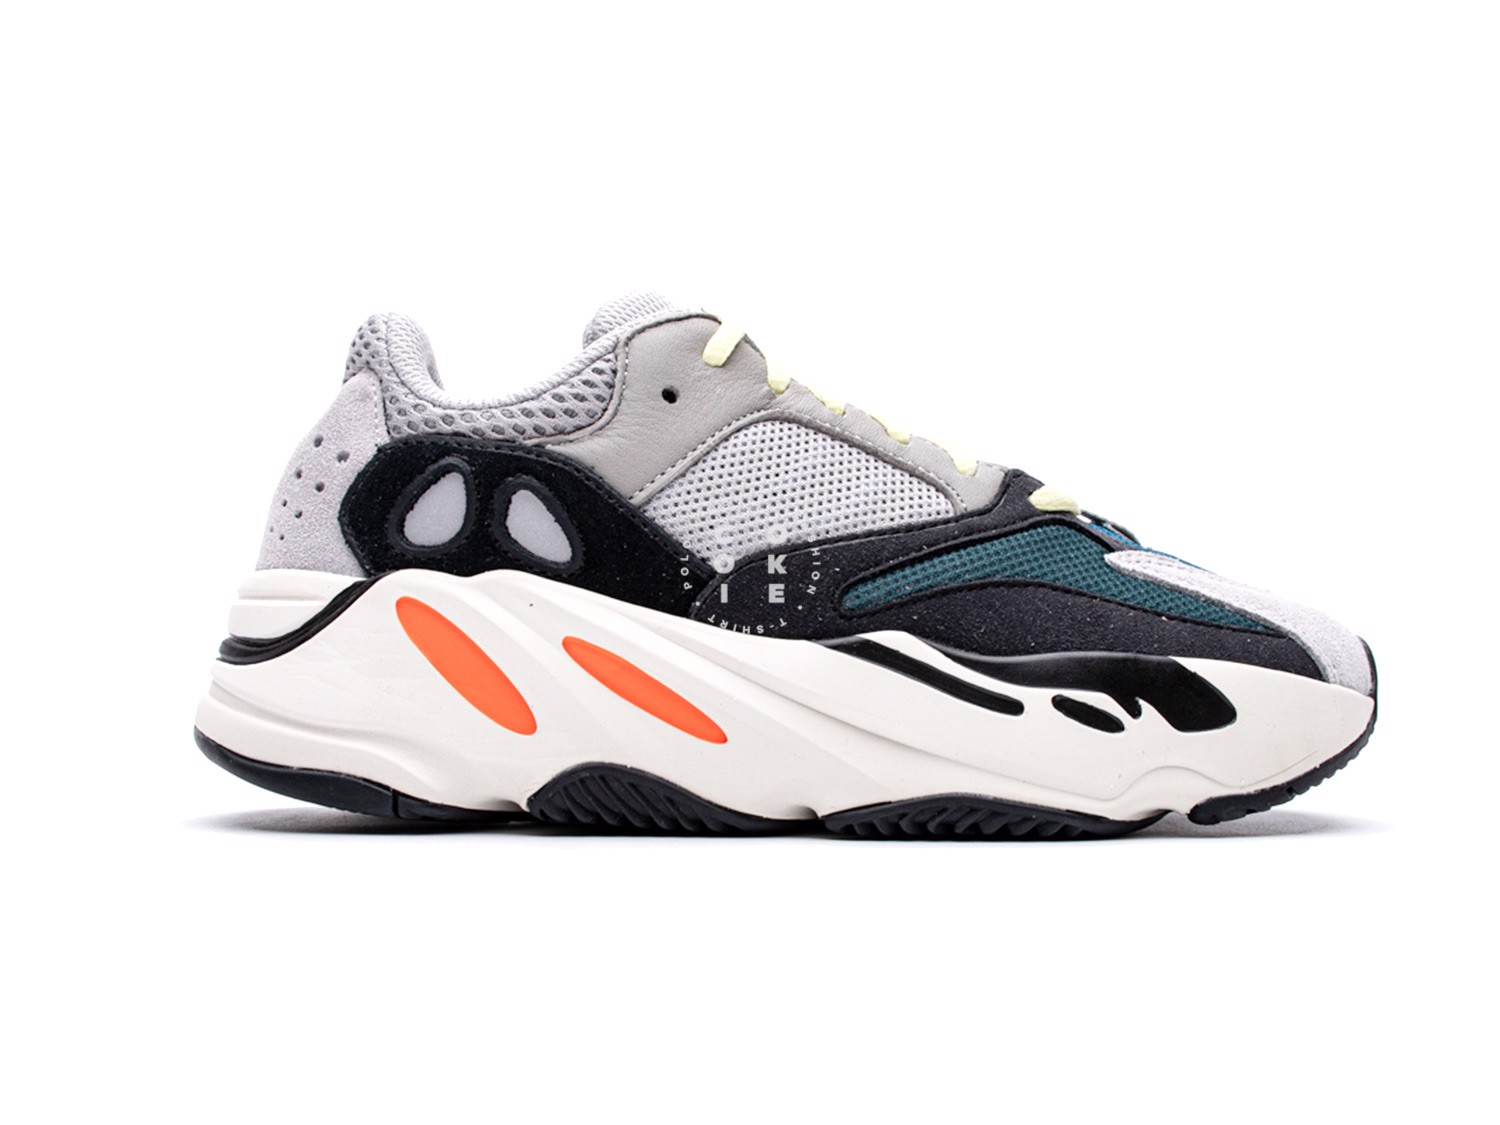 Giày adidas Yeezy Boost 700 Wave Runner Solid Grey - B75571